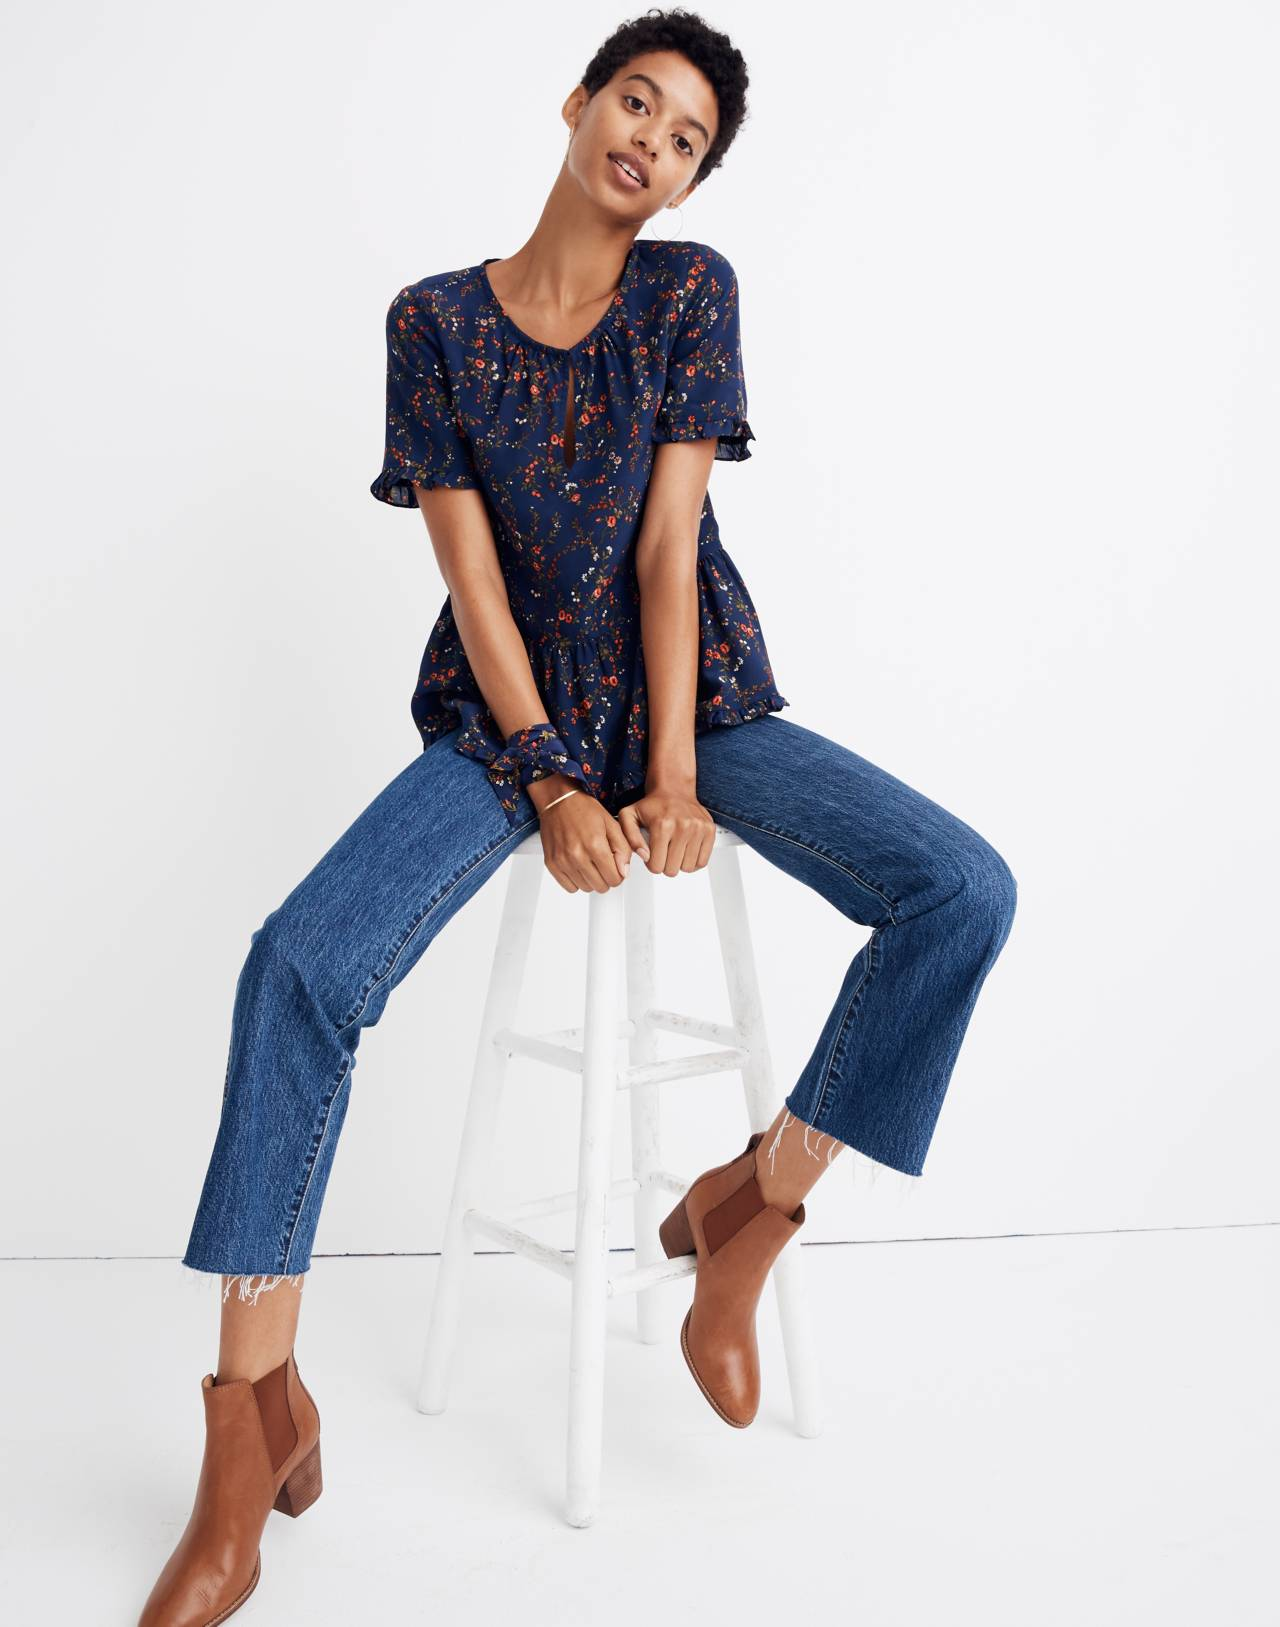 Silk Stanza Ruffle-Hem Top in Moonless Floral in whisper moonless night image 3